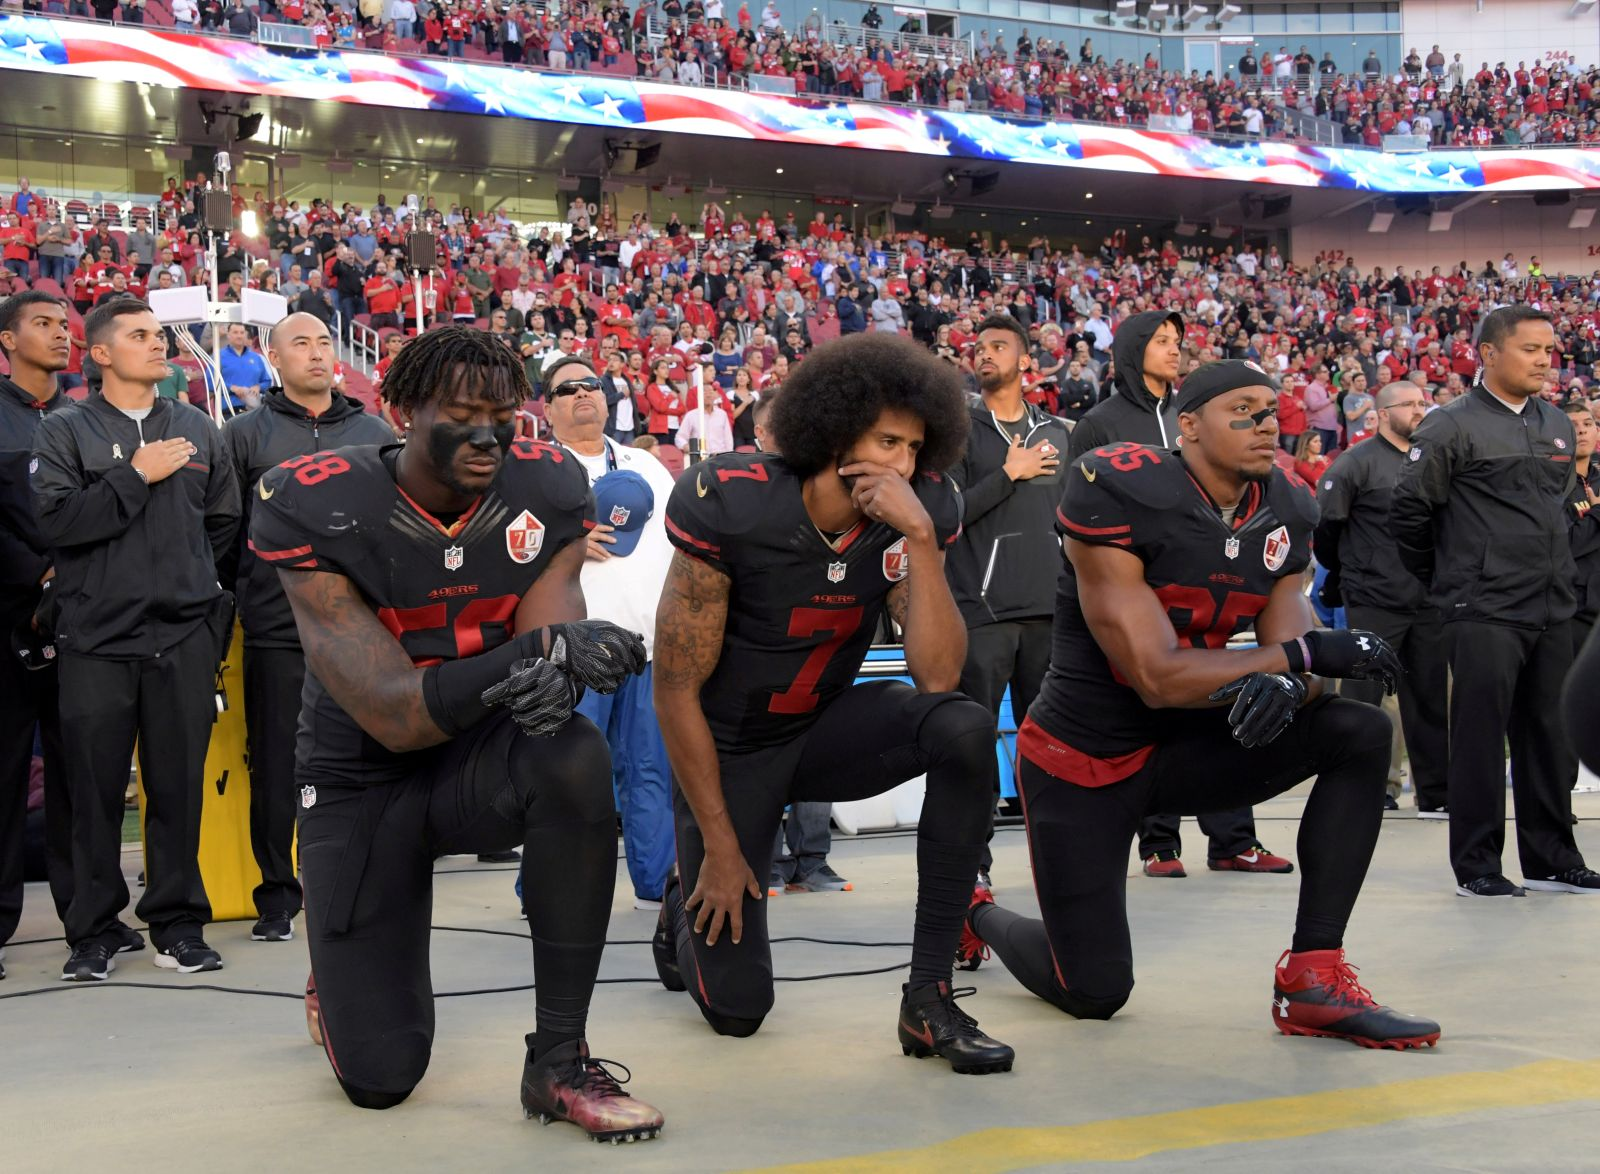 FILE PHOTO: San Francisco 49ers outside linebacker Eli Harold (58), quarterback Colin Kaepernick (7) and free safety Eric Reid (35) kneel in protest during the playing of the national anthem before a NFL game against the Arizona Cardinals in Santa Clara, California, Oct 6, 2016. Mandatory Credit: Kirby Lee-USA TODAY Sports/File Photo - RC15D997F5B0